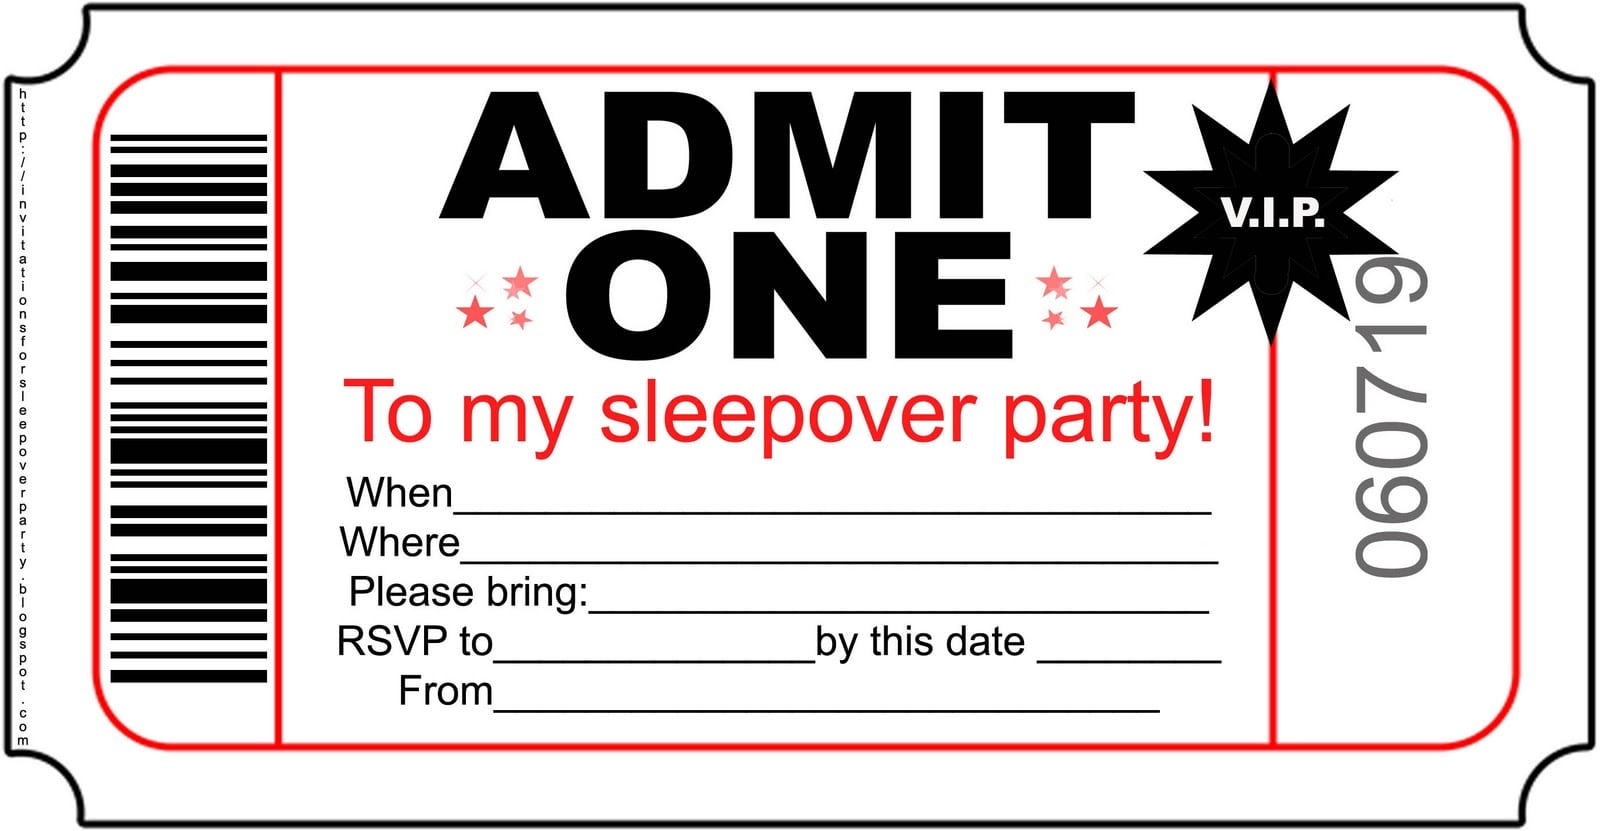 Free Printable Slumber Party Invitation Templates 8sHq5fBd